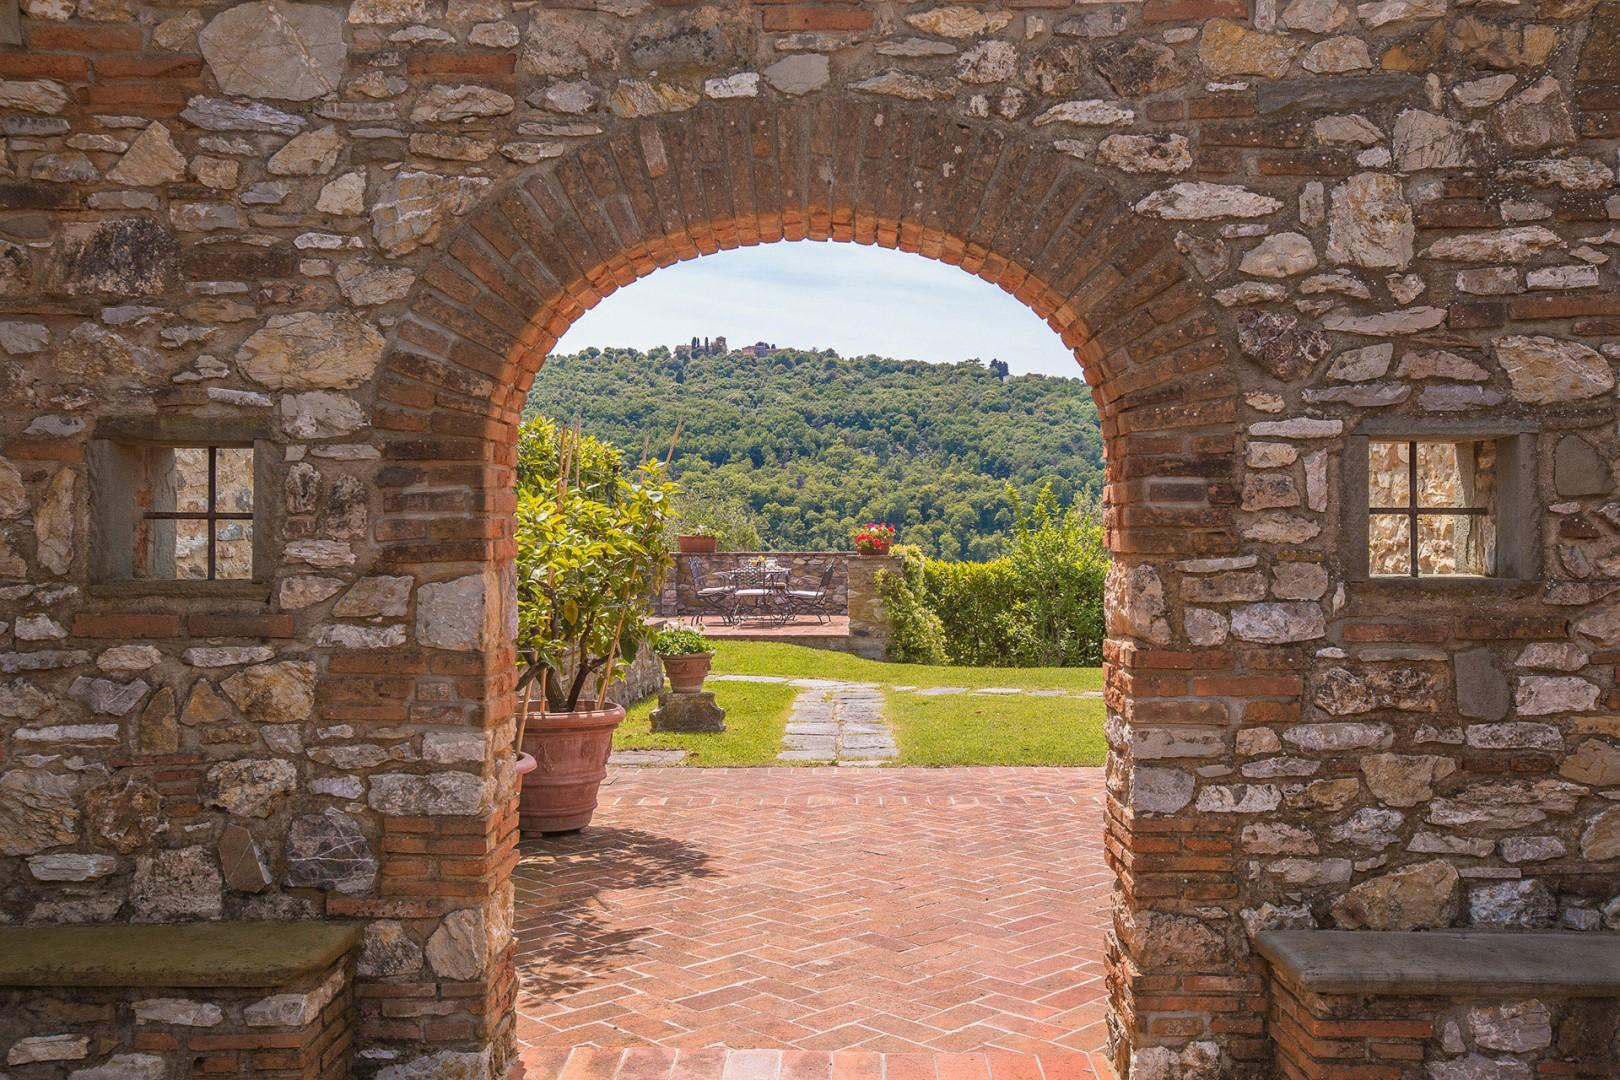 An archway frames another outdoor space where you can sit and enjoy the views.